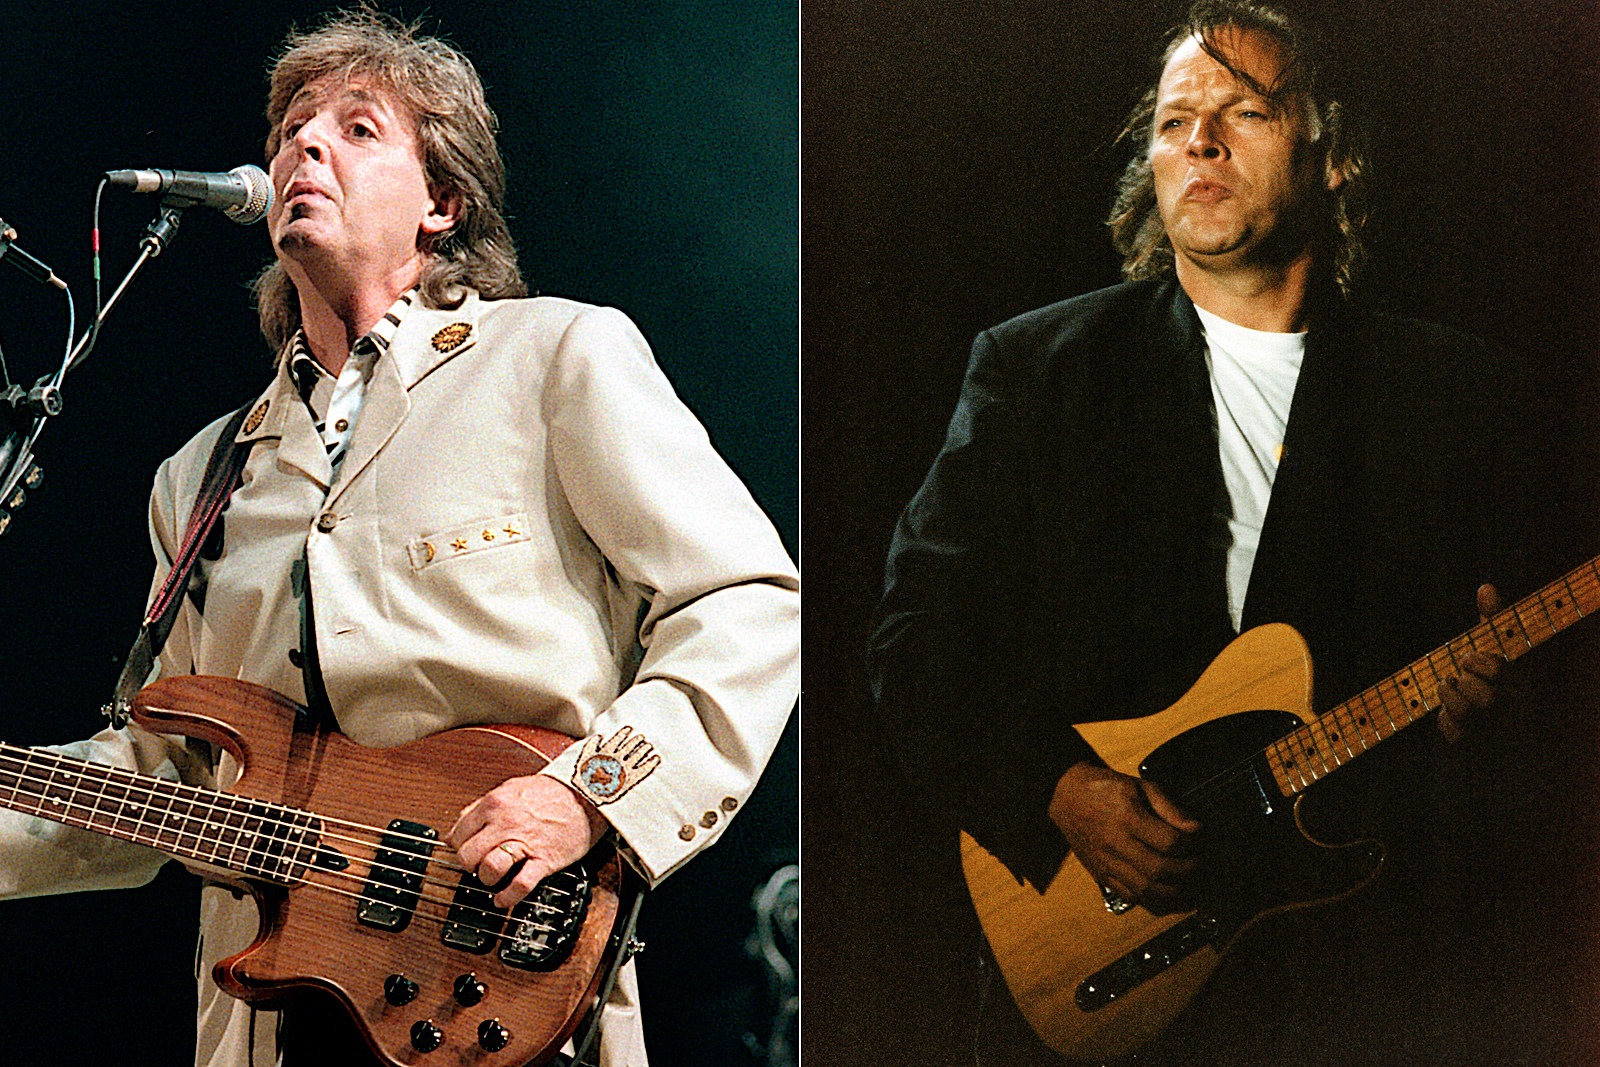 Pink Floyd's Battle With Paul McCartney at Knebworth